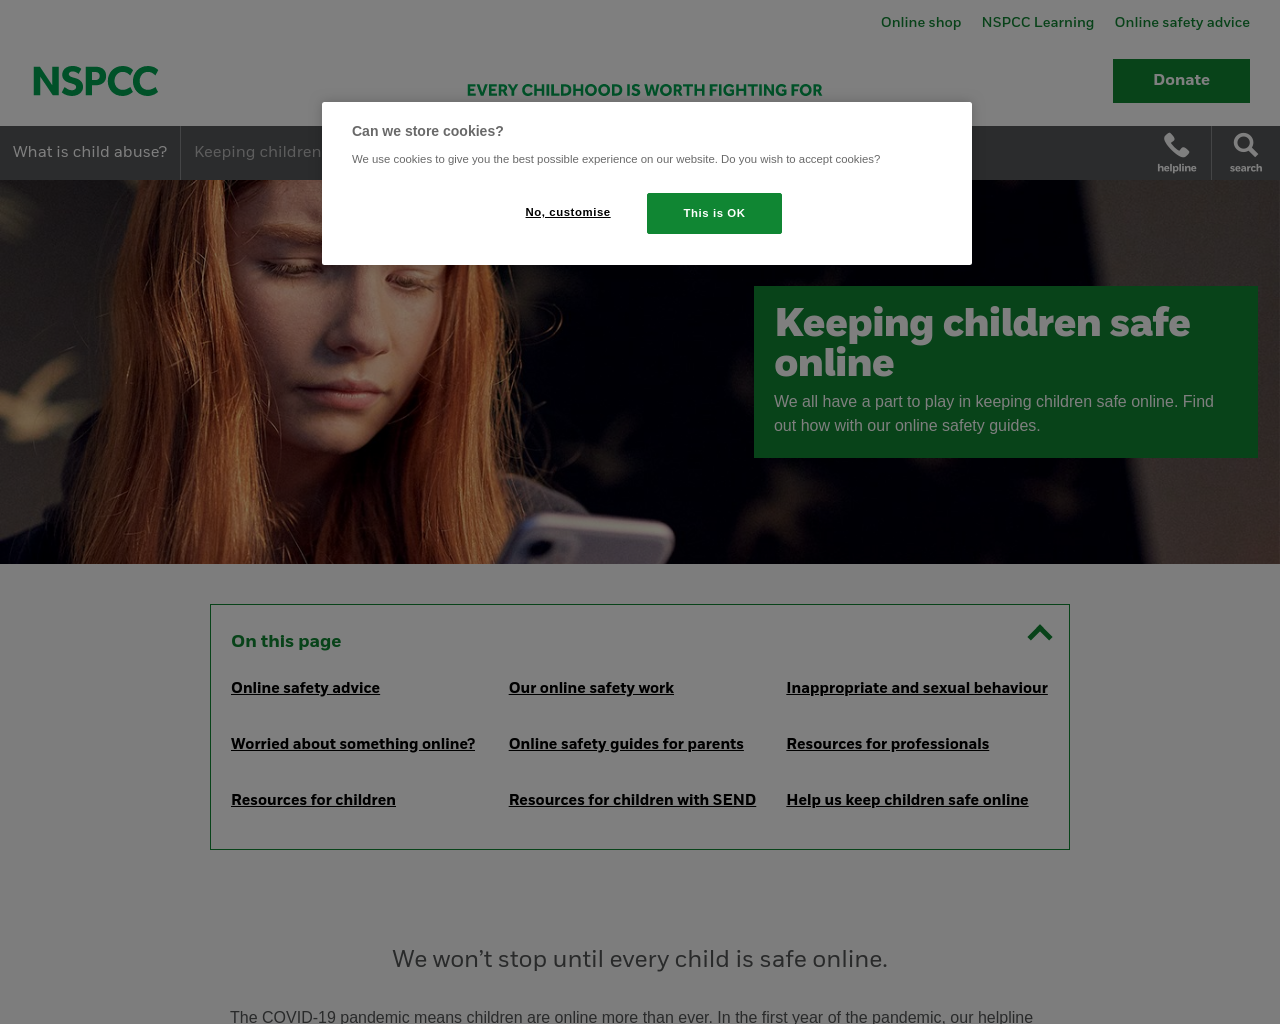 NSPCC & INTERNET SAFETY